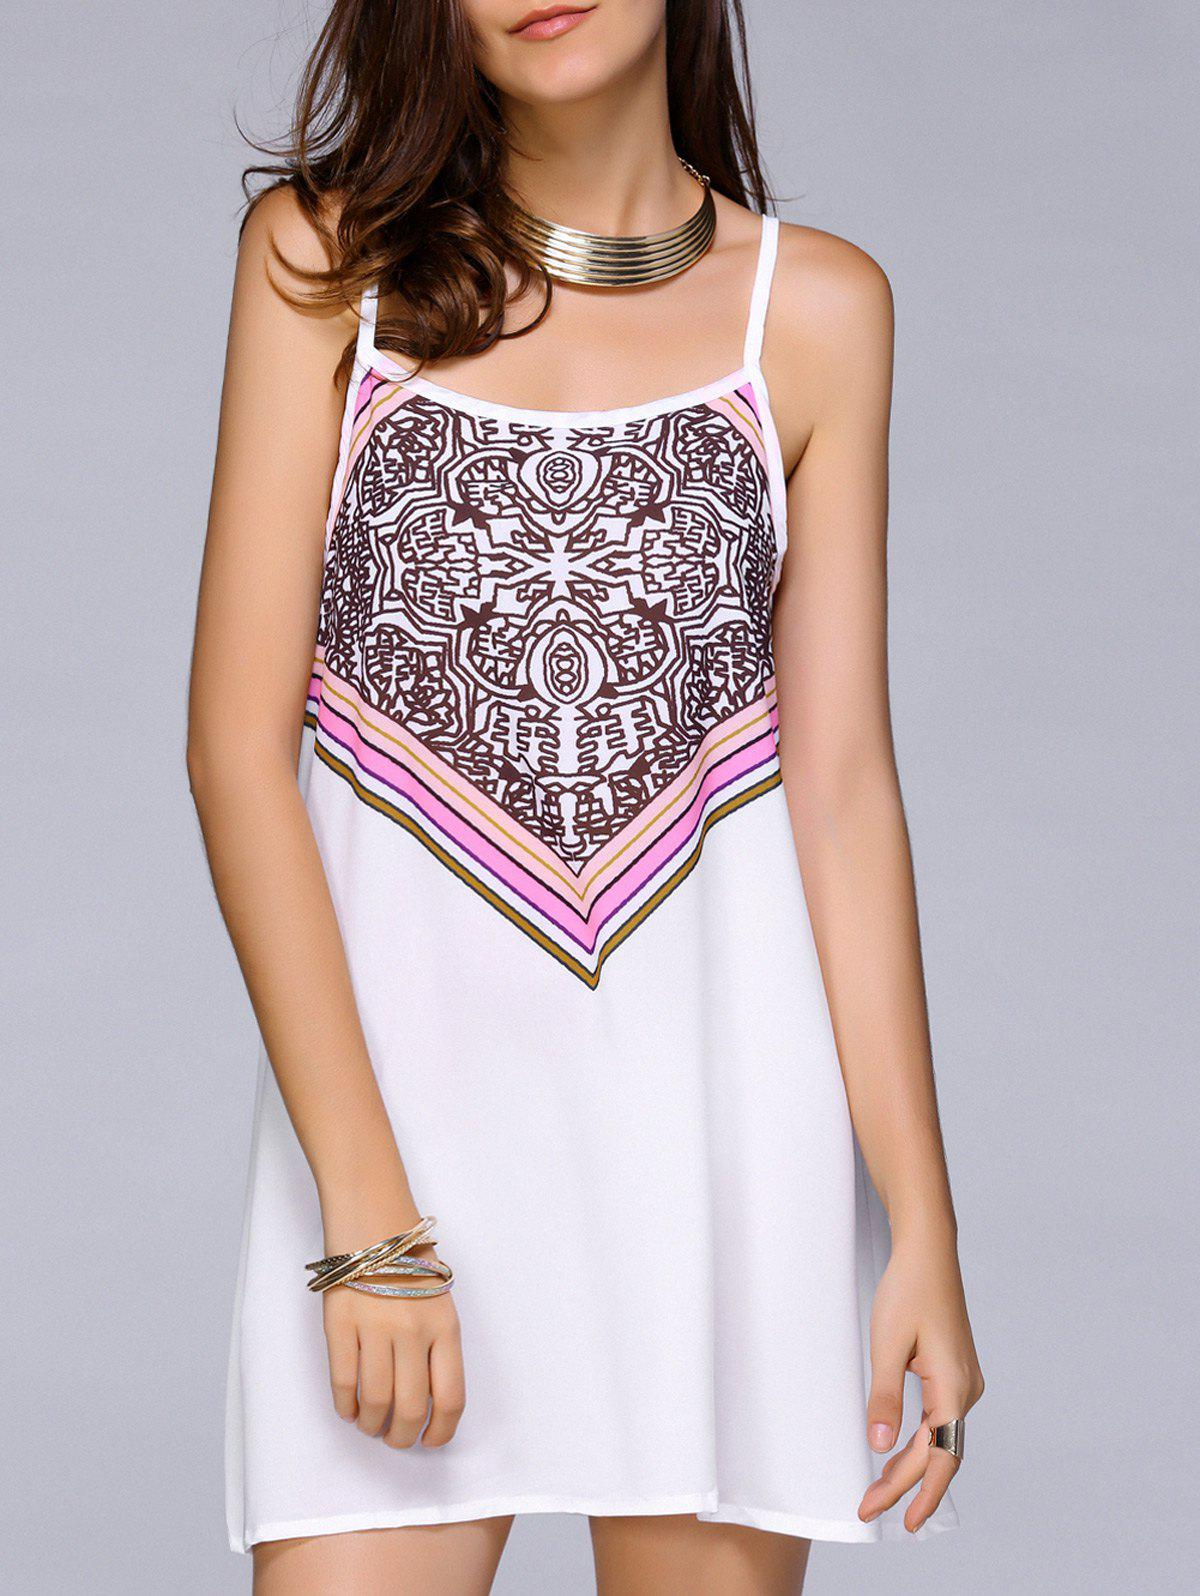 Printed Spaghetti Strap Chiffon Dress - WHITE XL